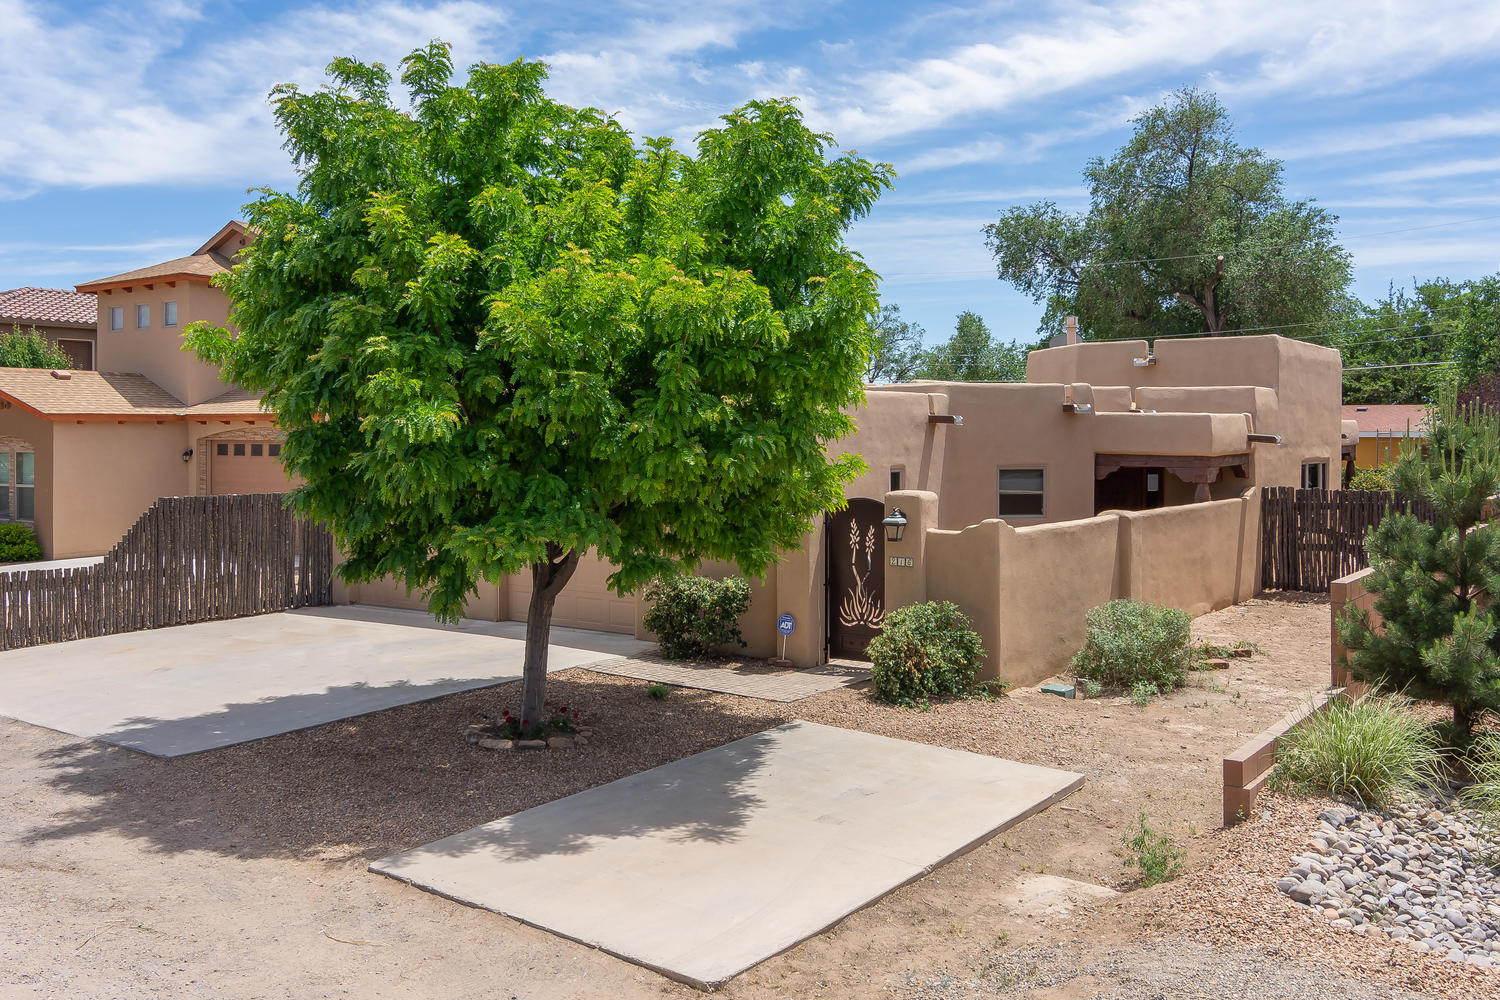 216 NICO TRAIL NW, LOS RANCHOS, NM 87114